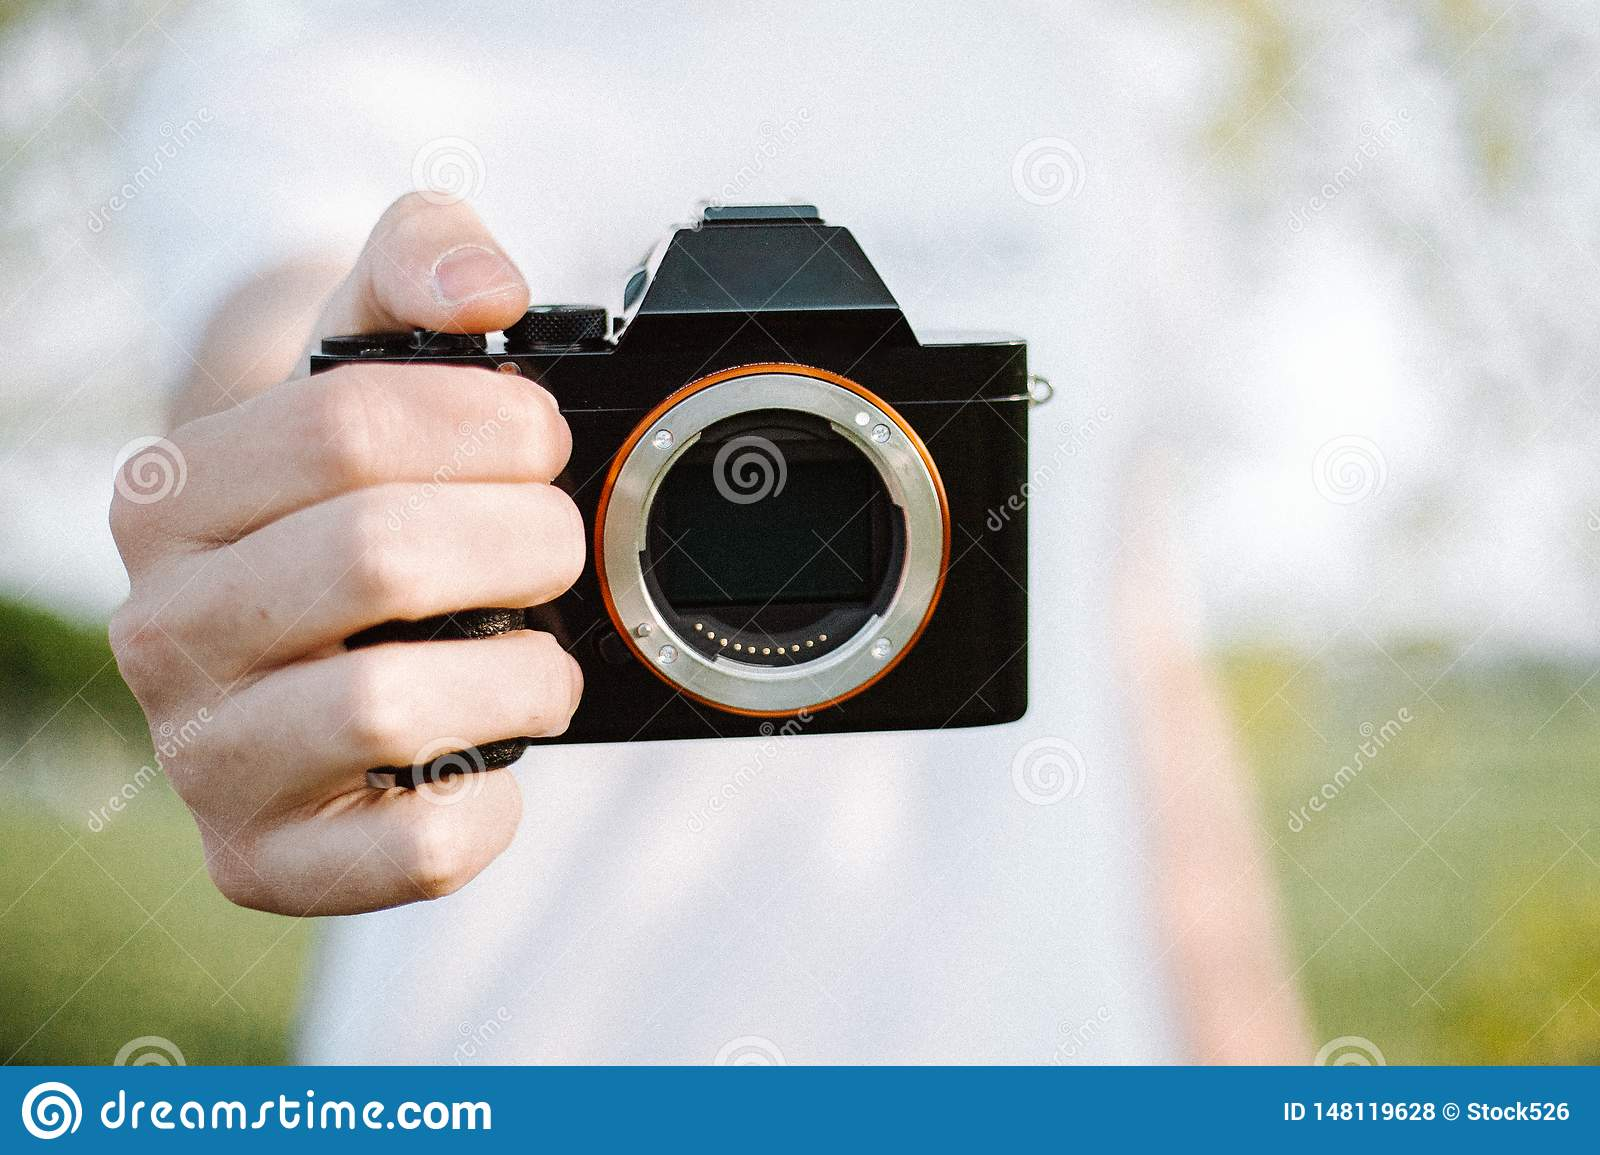 Male photographer is photographing with his camera